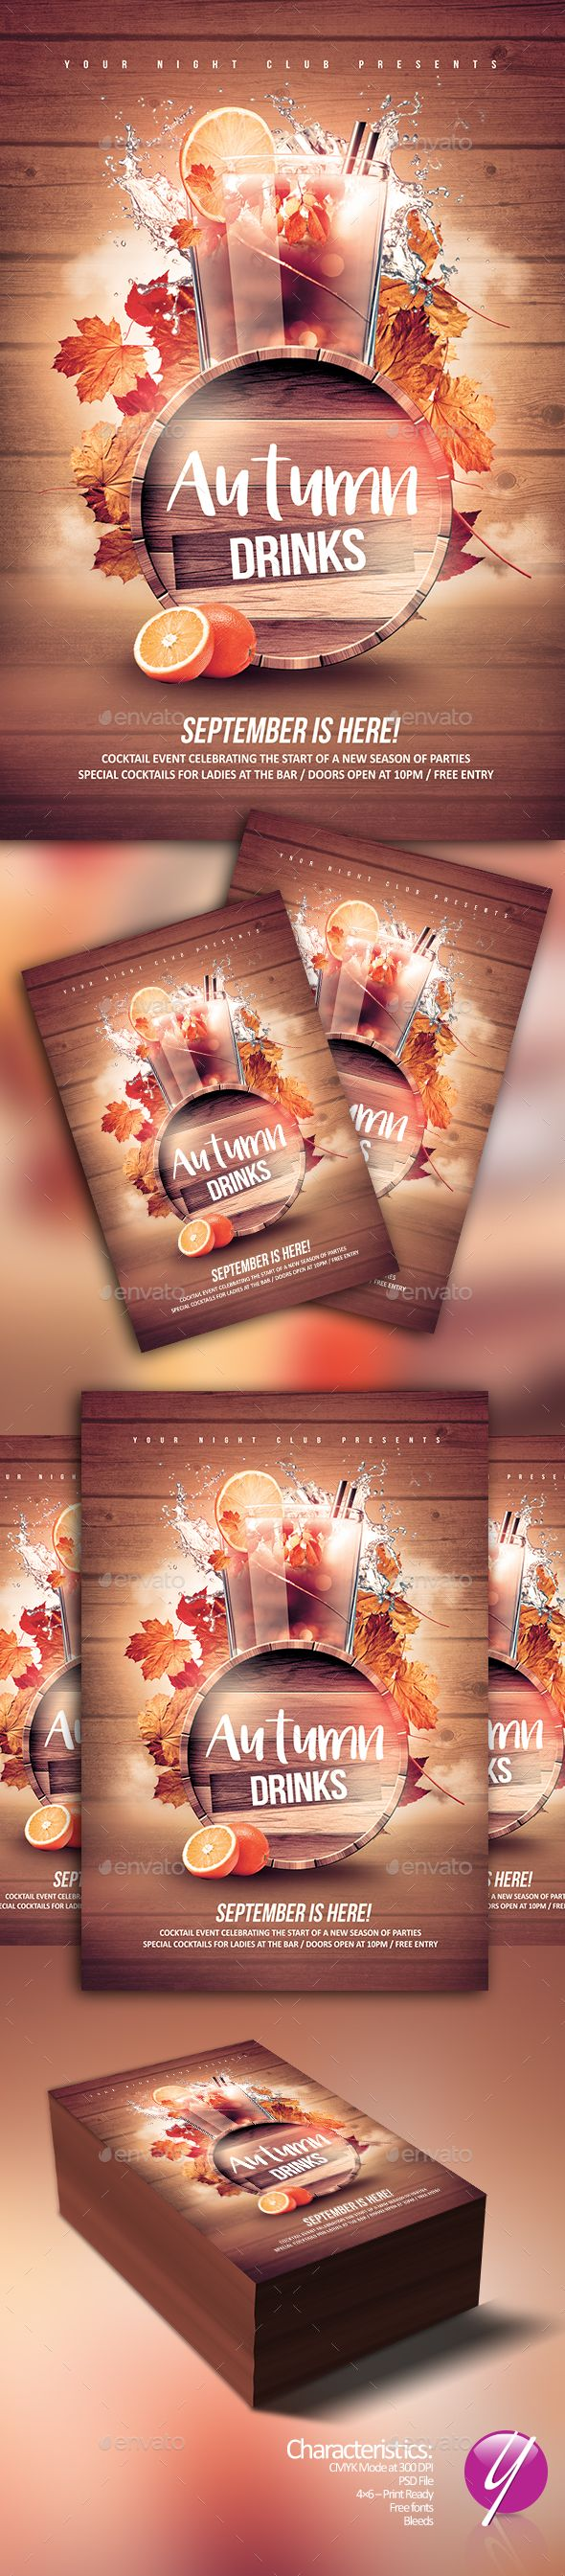 best ideas about flyers flyer design graphic autumn drinks